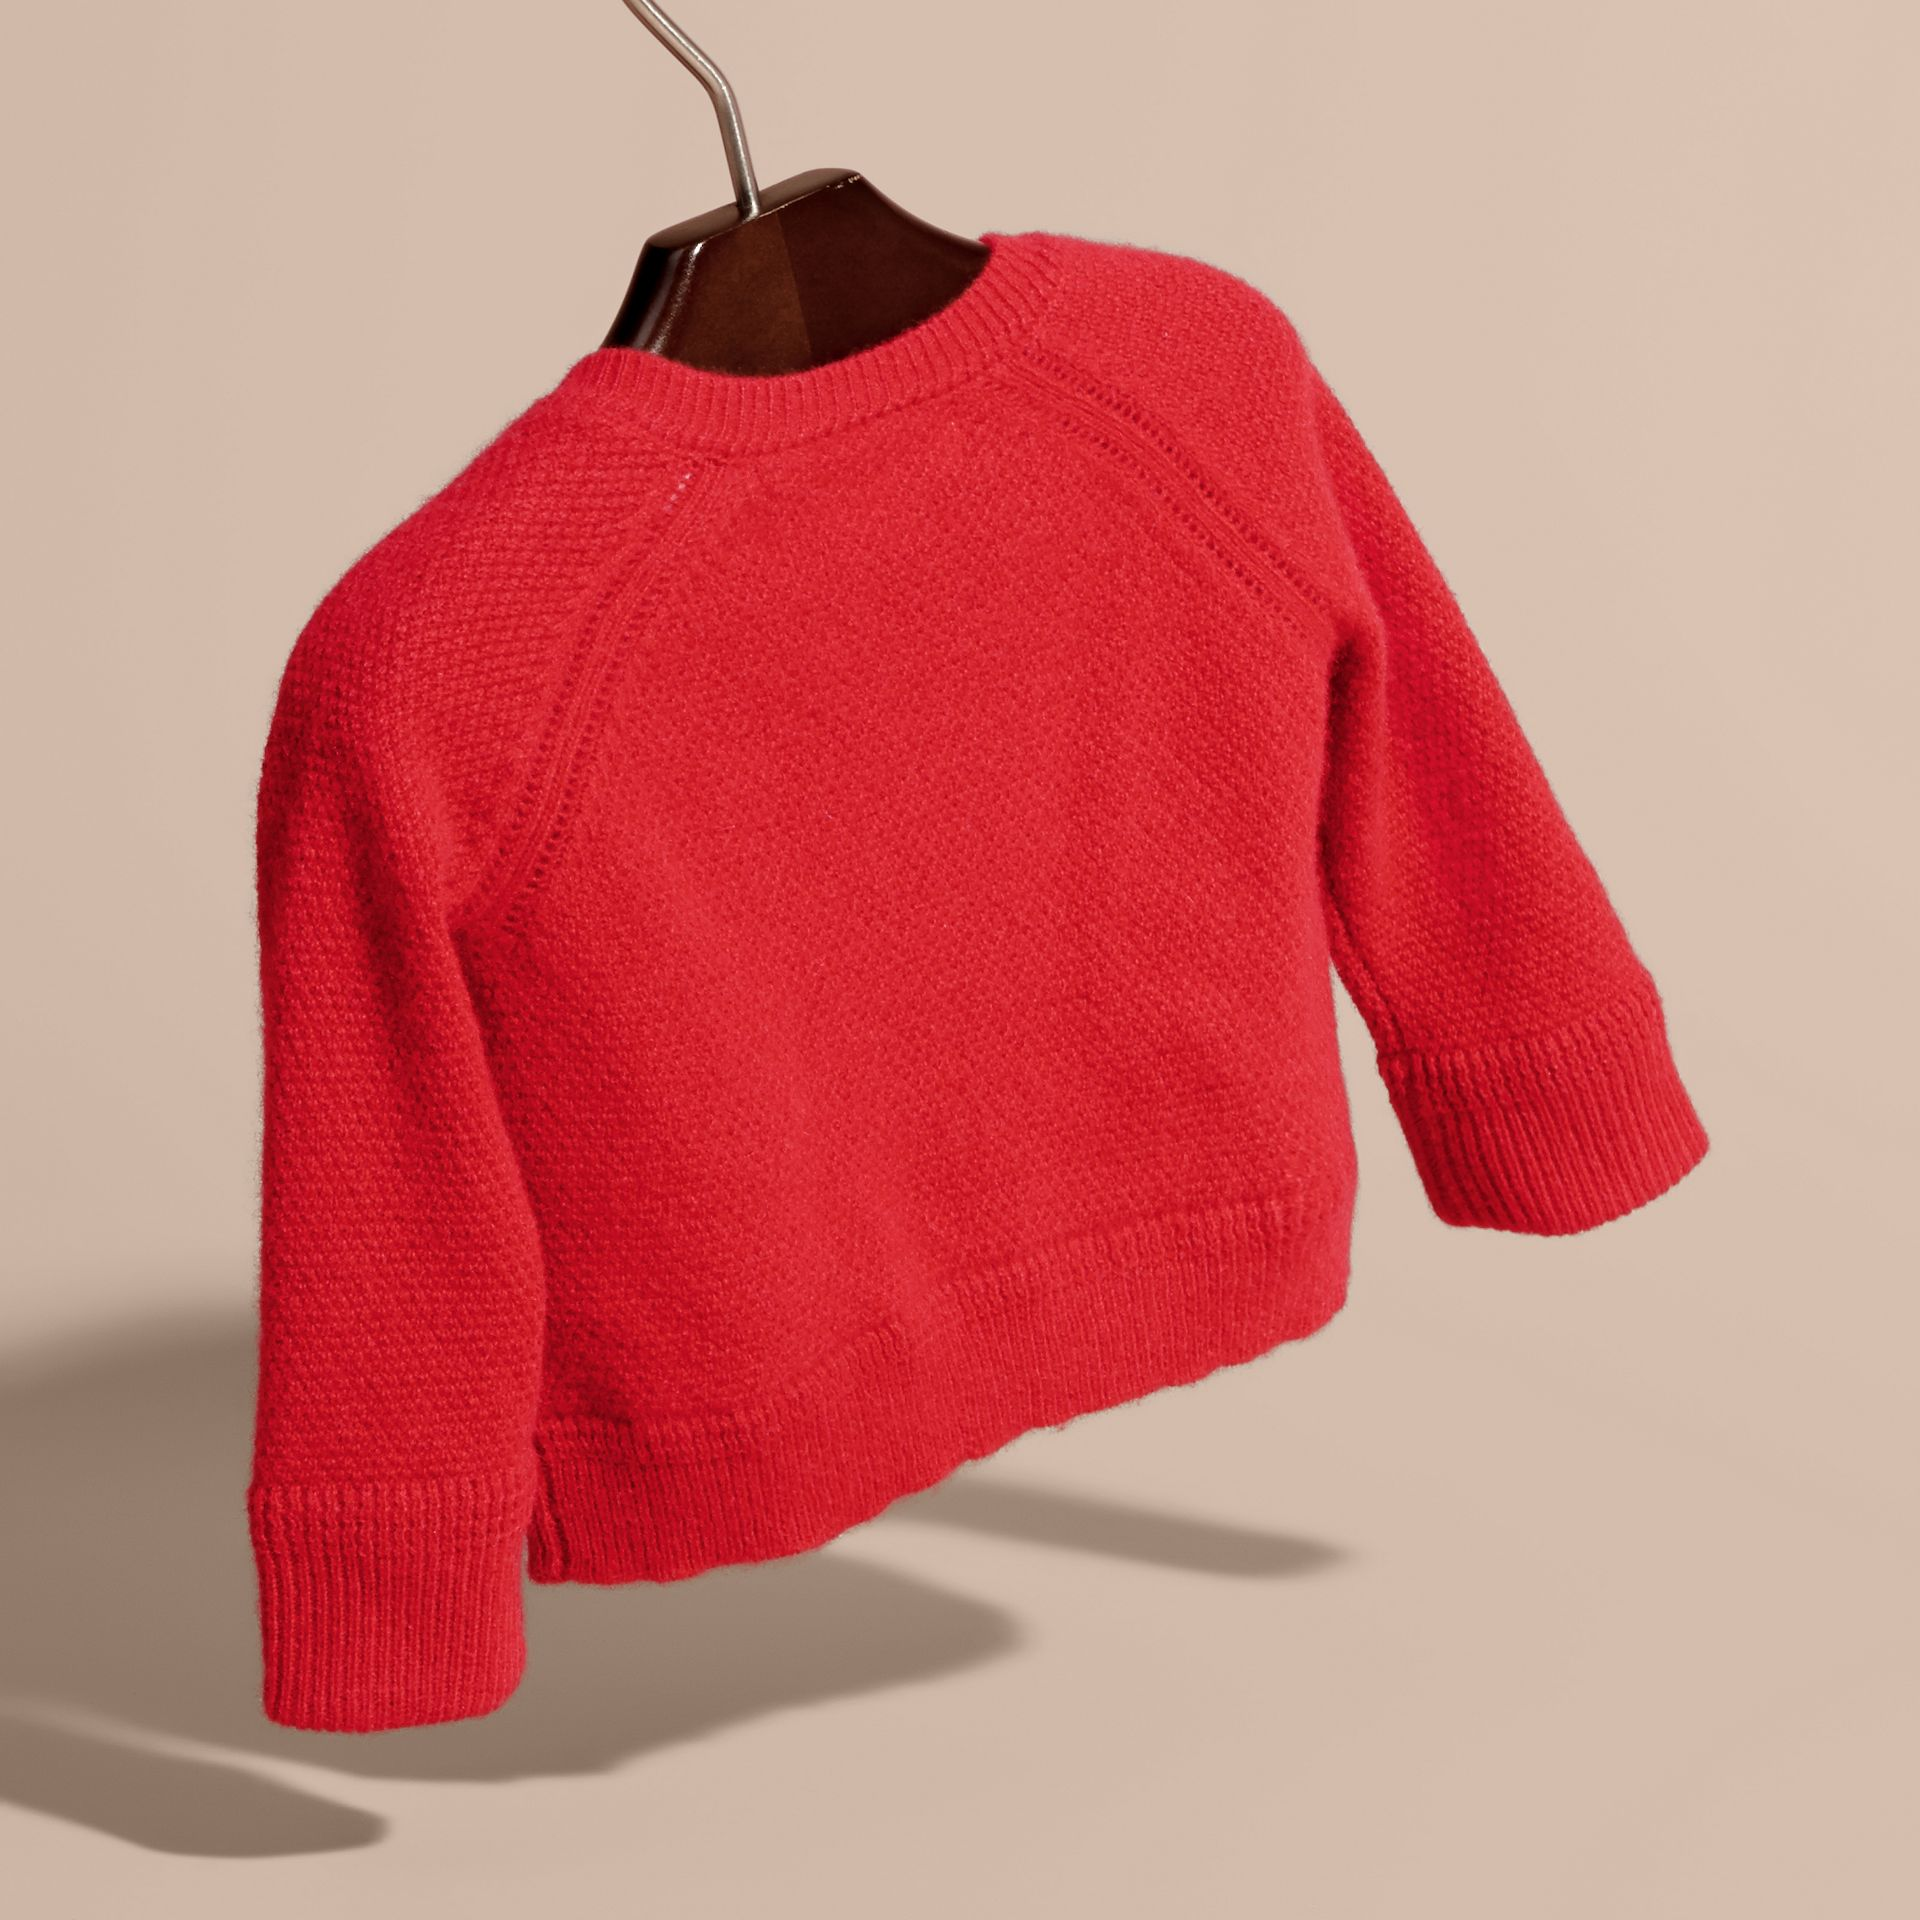 Textured Knit Cashmere Cardigan in Parade Red | Burberry - gallery image 4